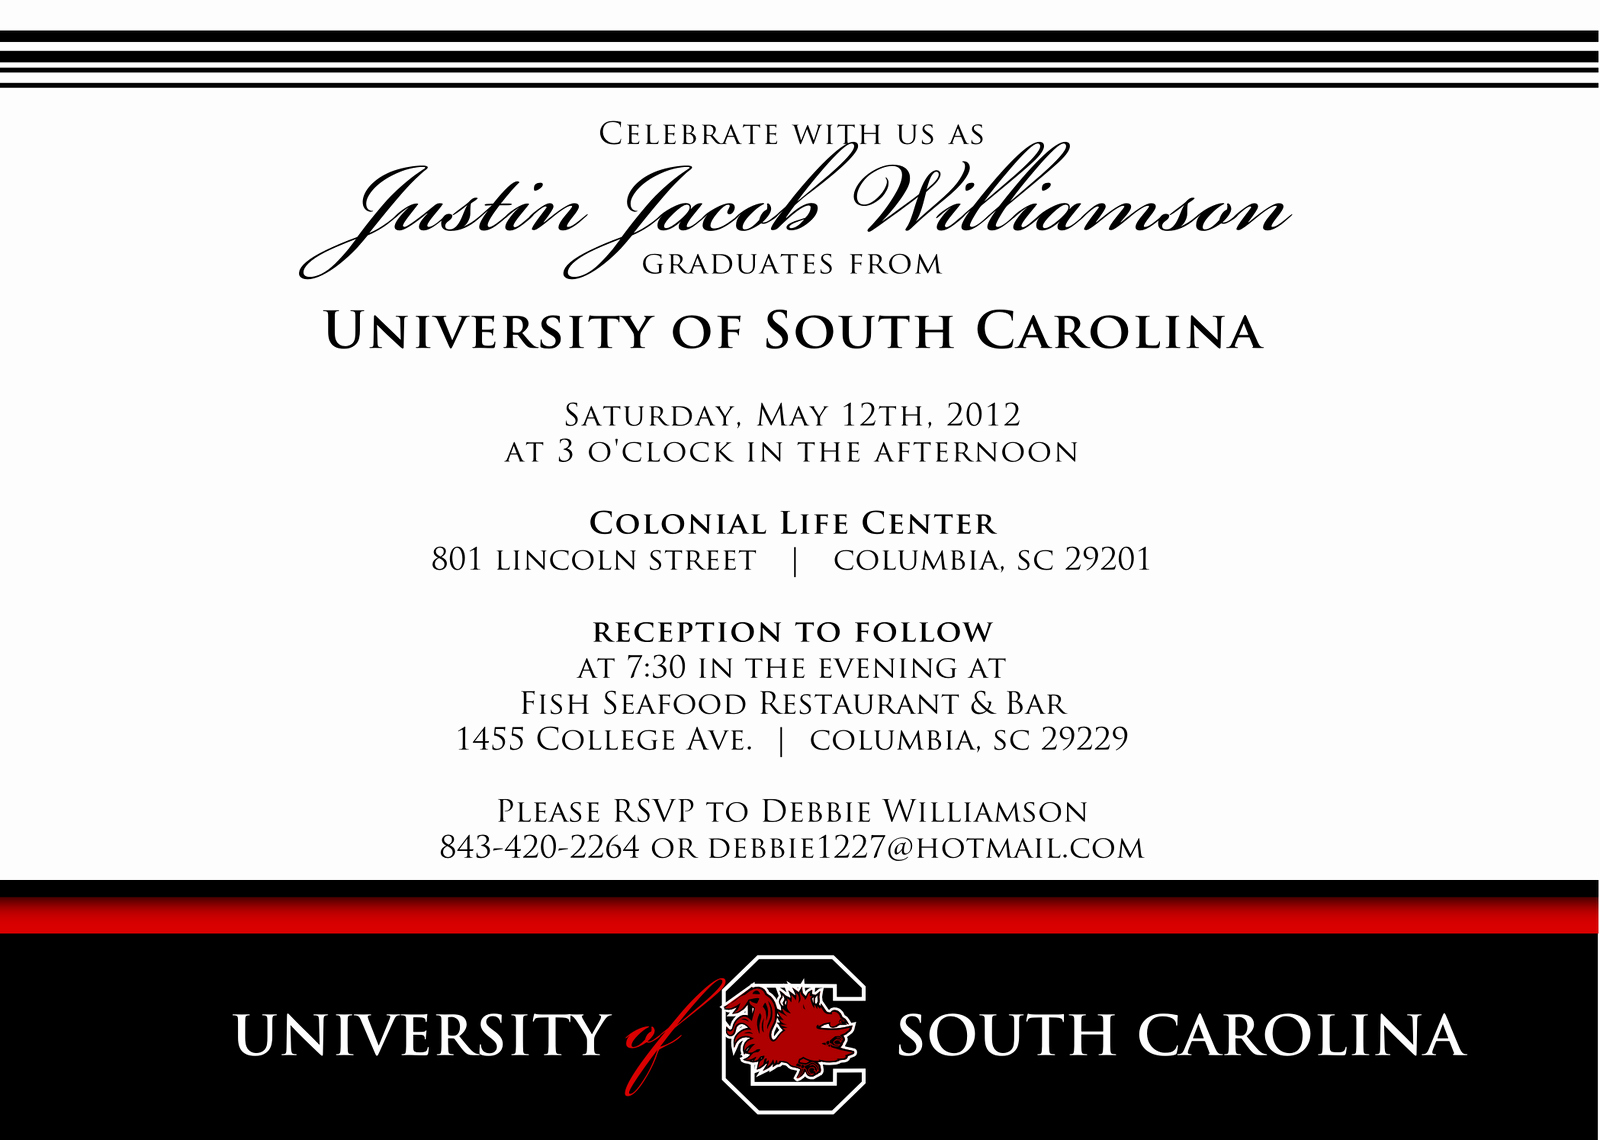 College Graduation Invitation Wording Samples Fresh Graduation Dinner Invitation Wording